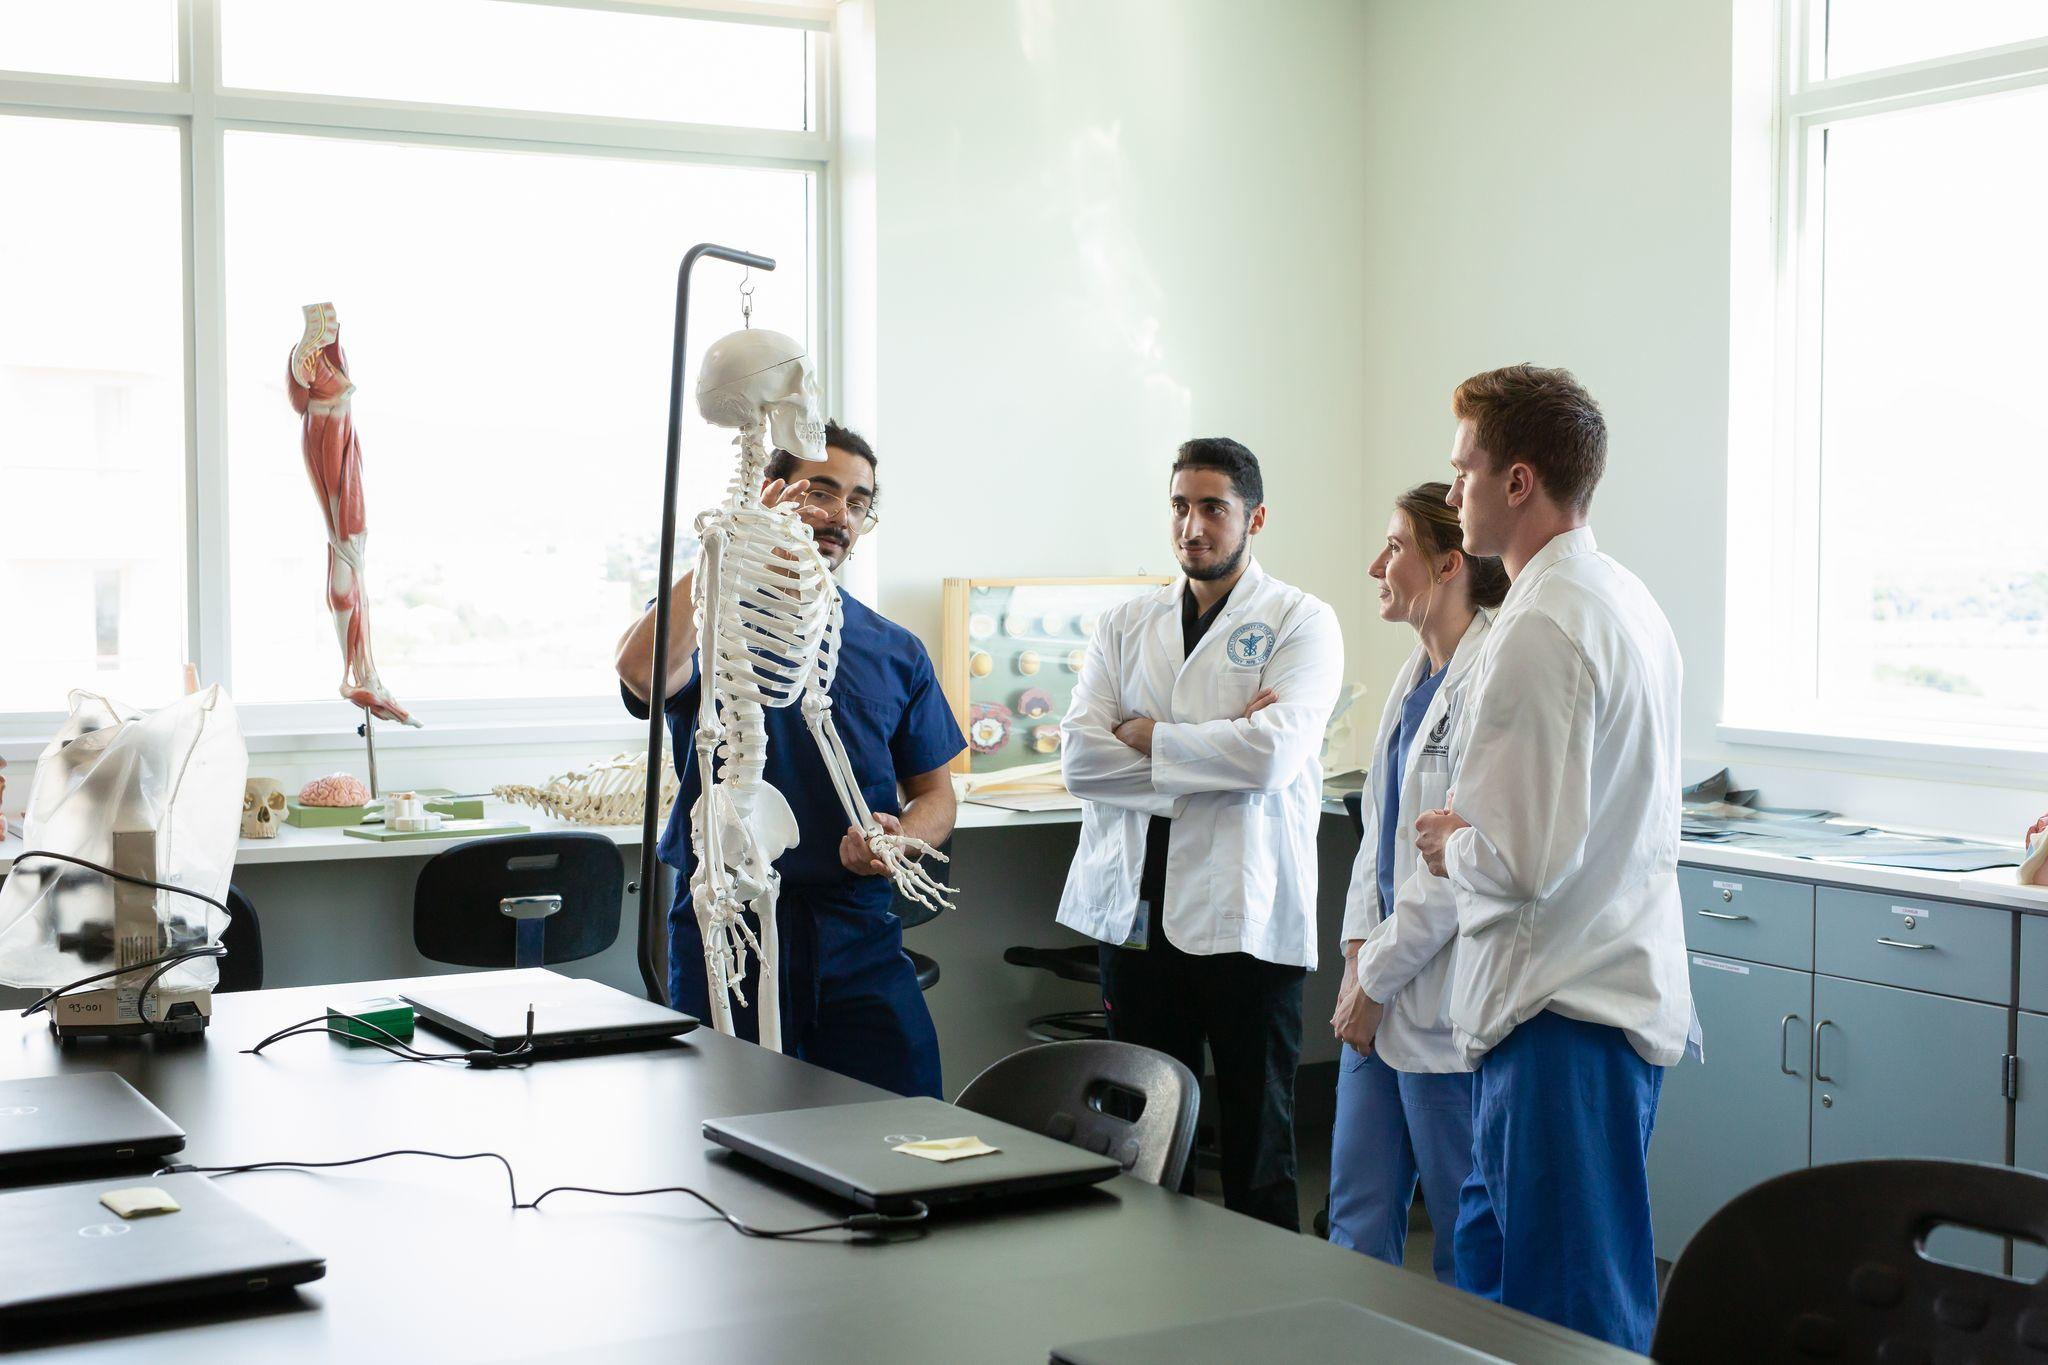 medical students in lab